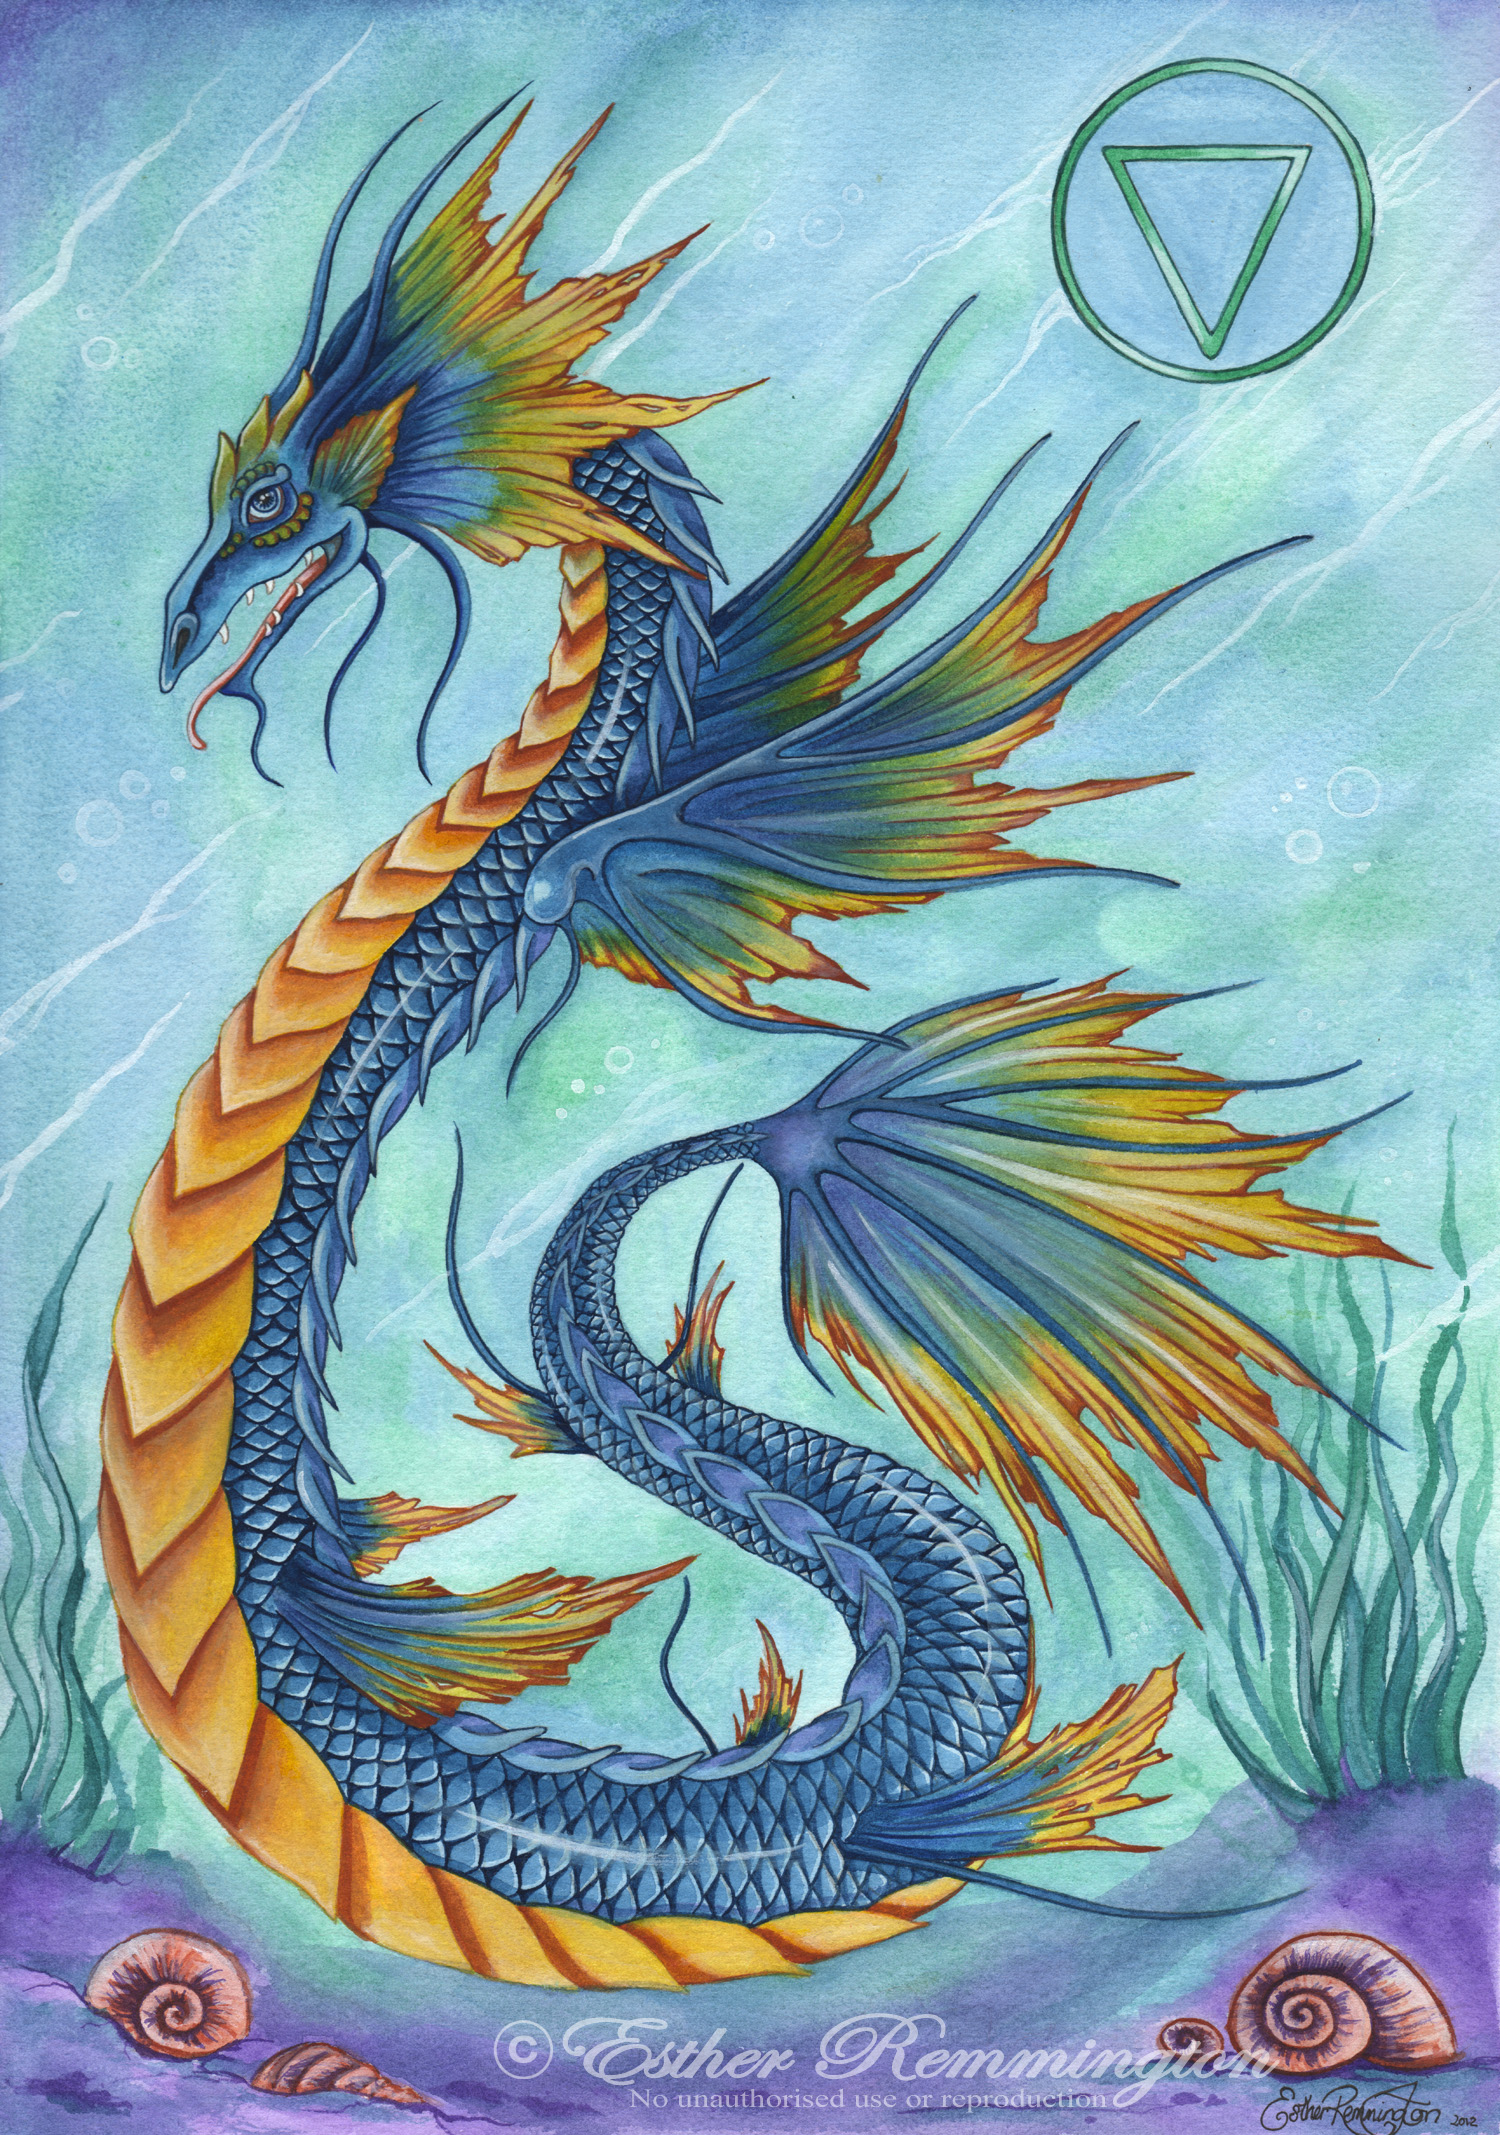 Water Dragon - 2012